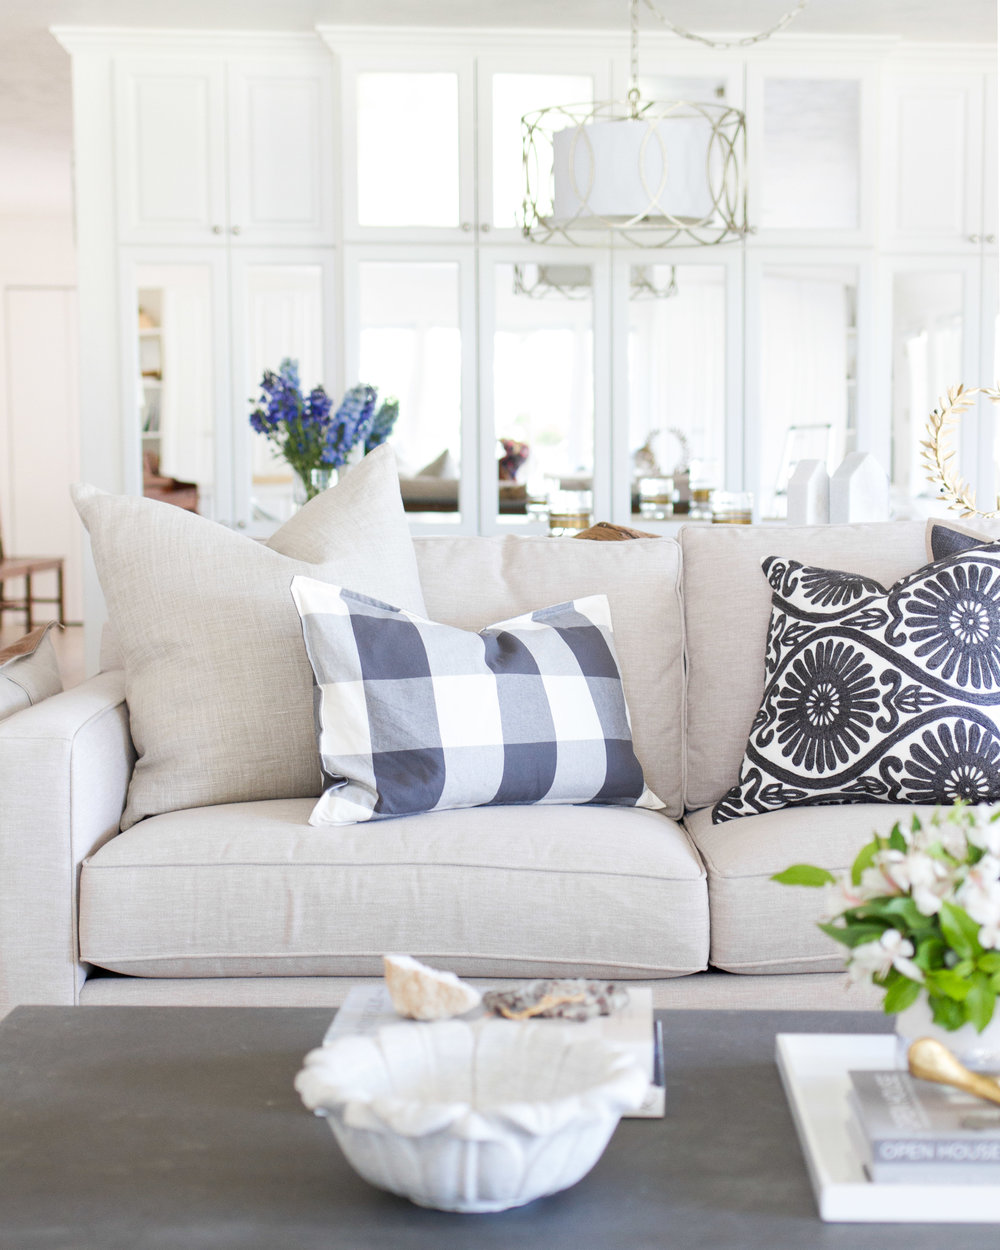 living room with linen sofa and navy pillows